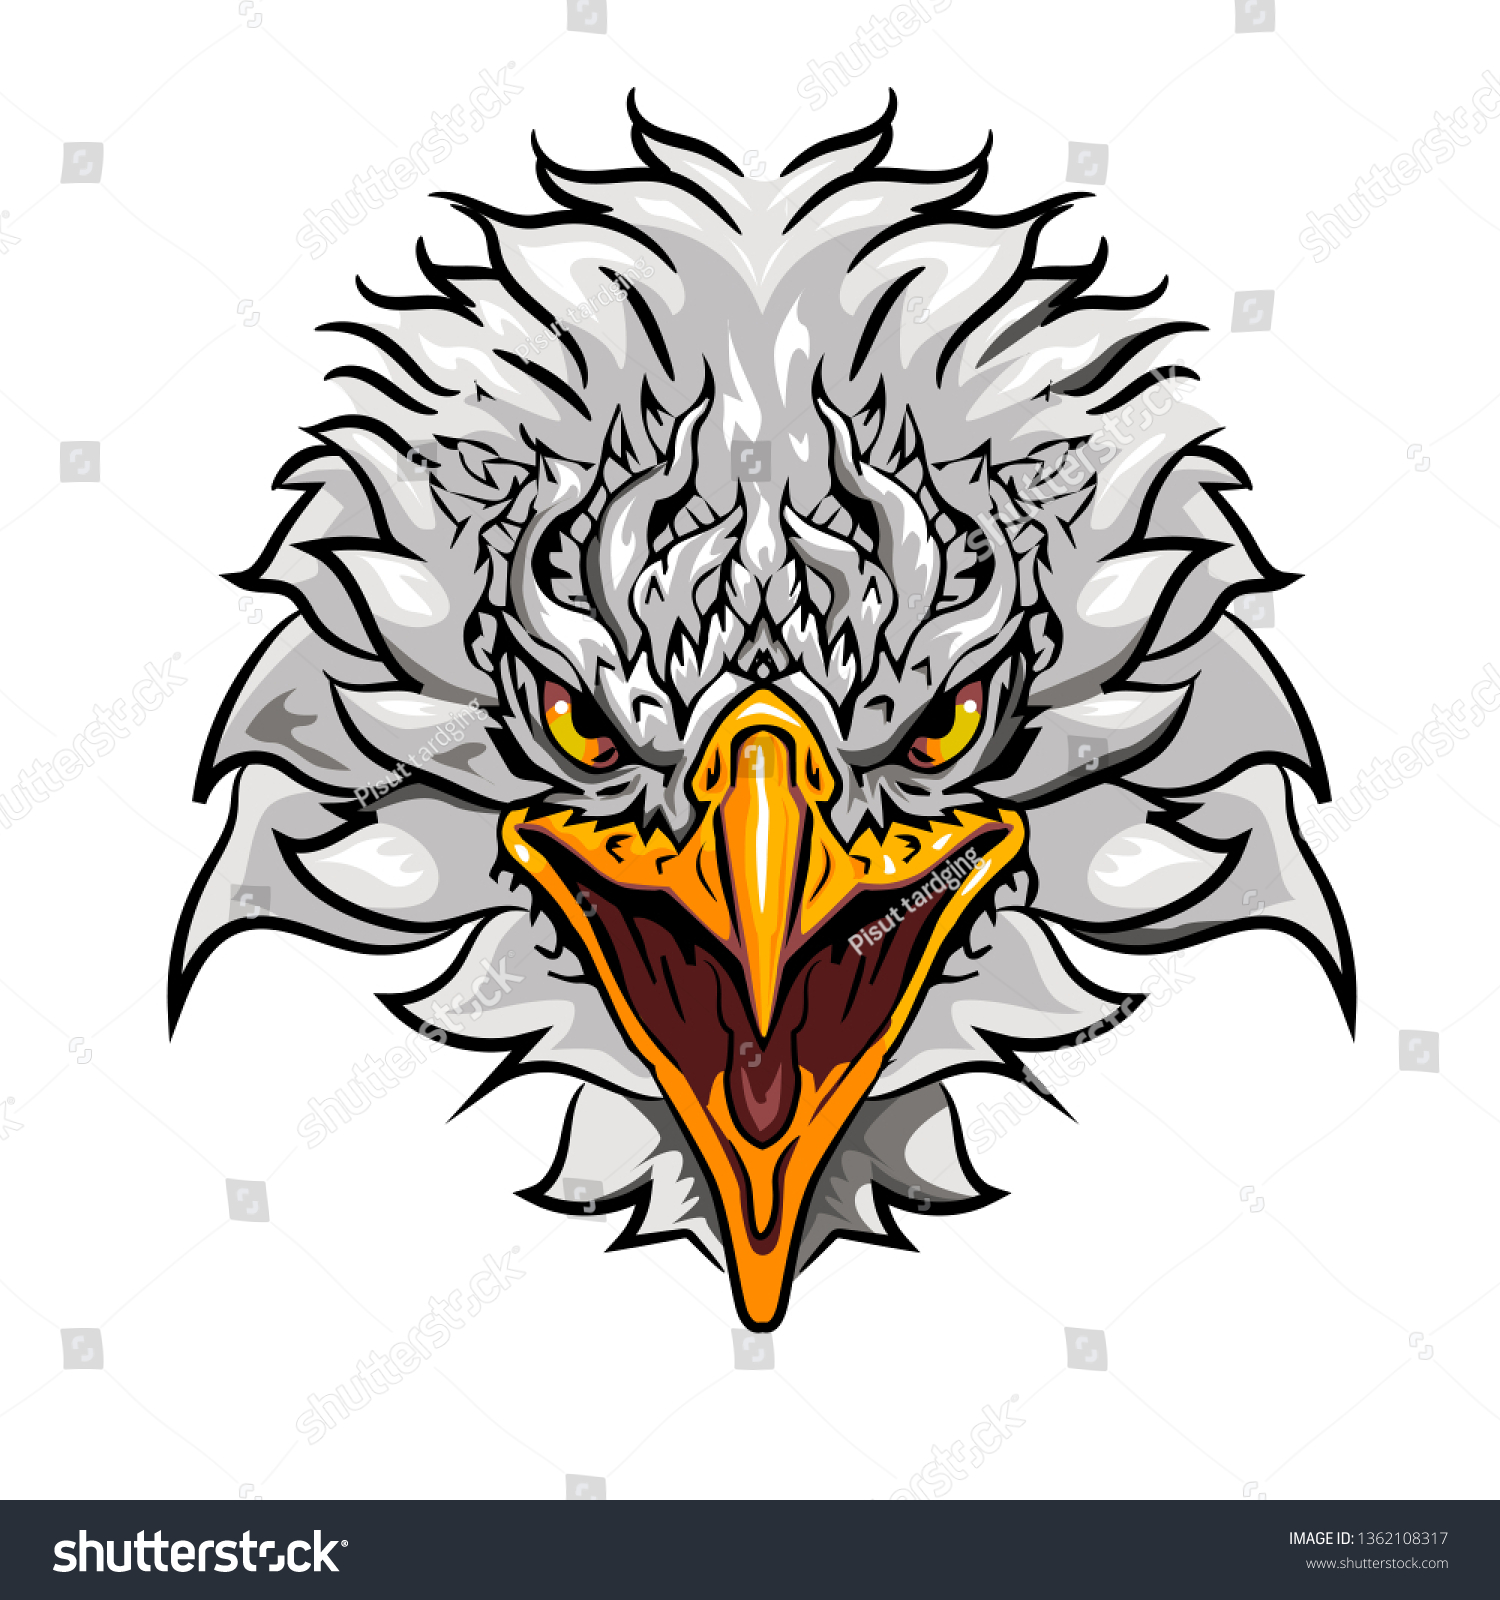 hight resolution of eagle face vector clipart